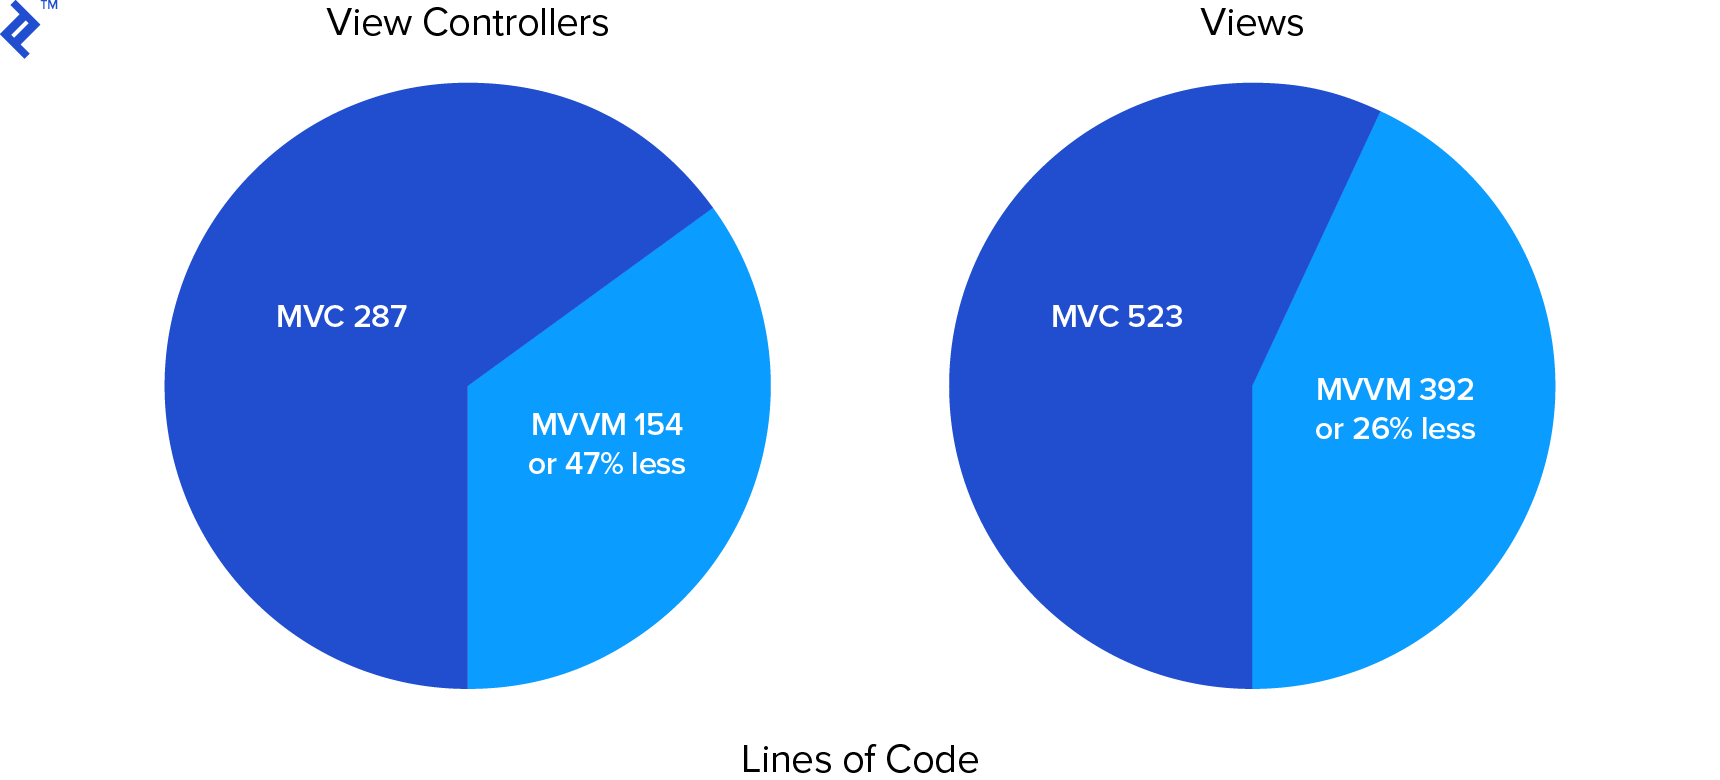 Lines-of-code pie charts. View controllers: MVC 287 vs MVVM 154 or 47% less; Views: MVC 523 vs MVVM 392 or 26% less.